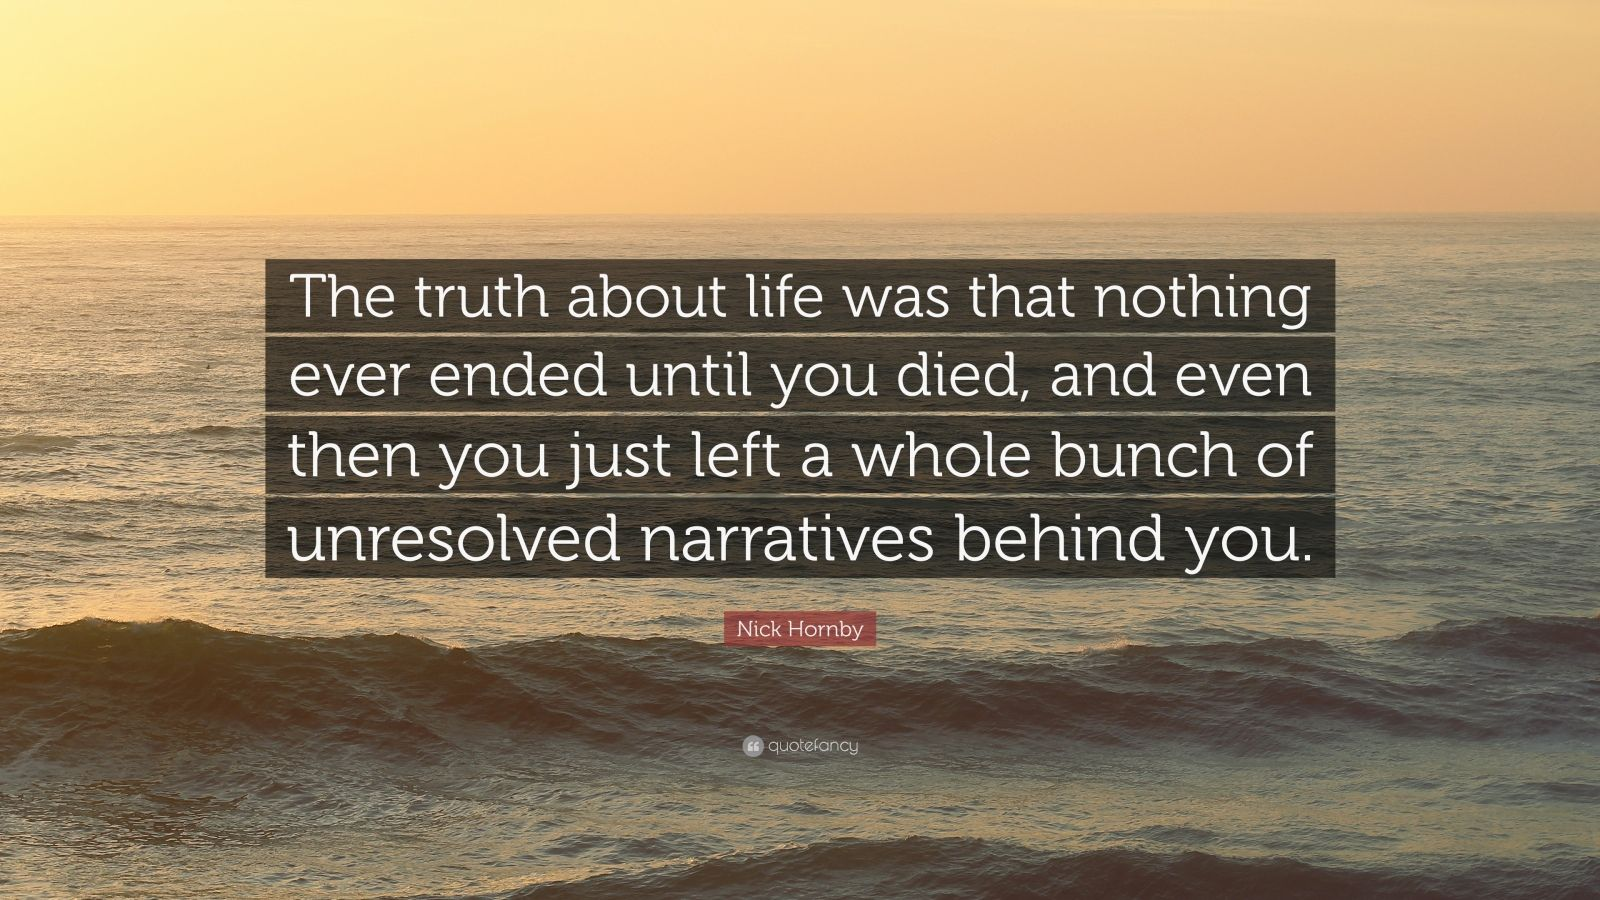 "Nick Hornby Quote: ""The truth about life was that nothing ever ended until you died, and even then you just left a whole bunch of unresolved narratives behind you."""